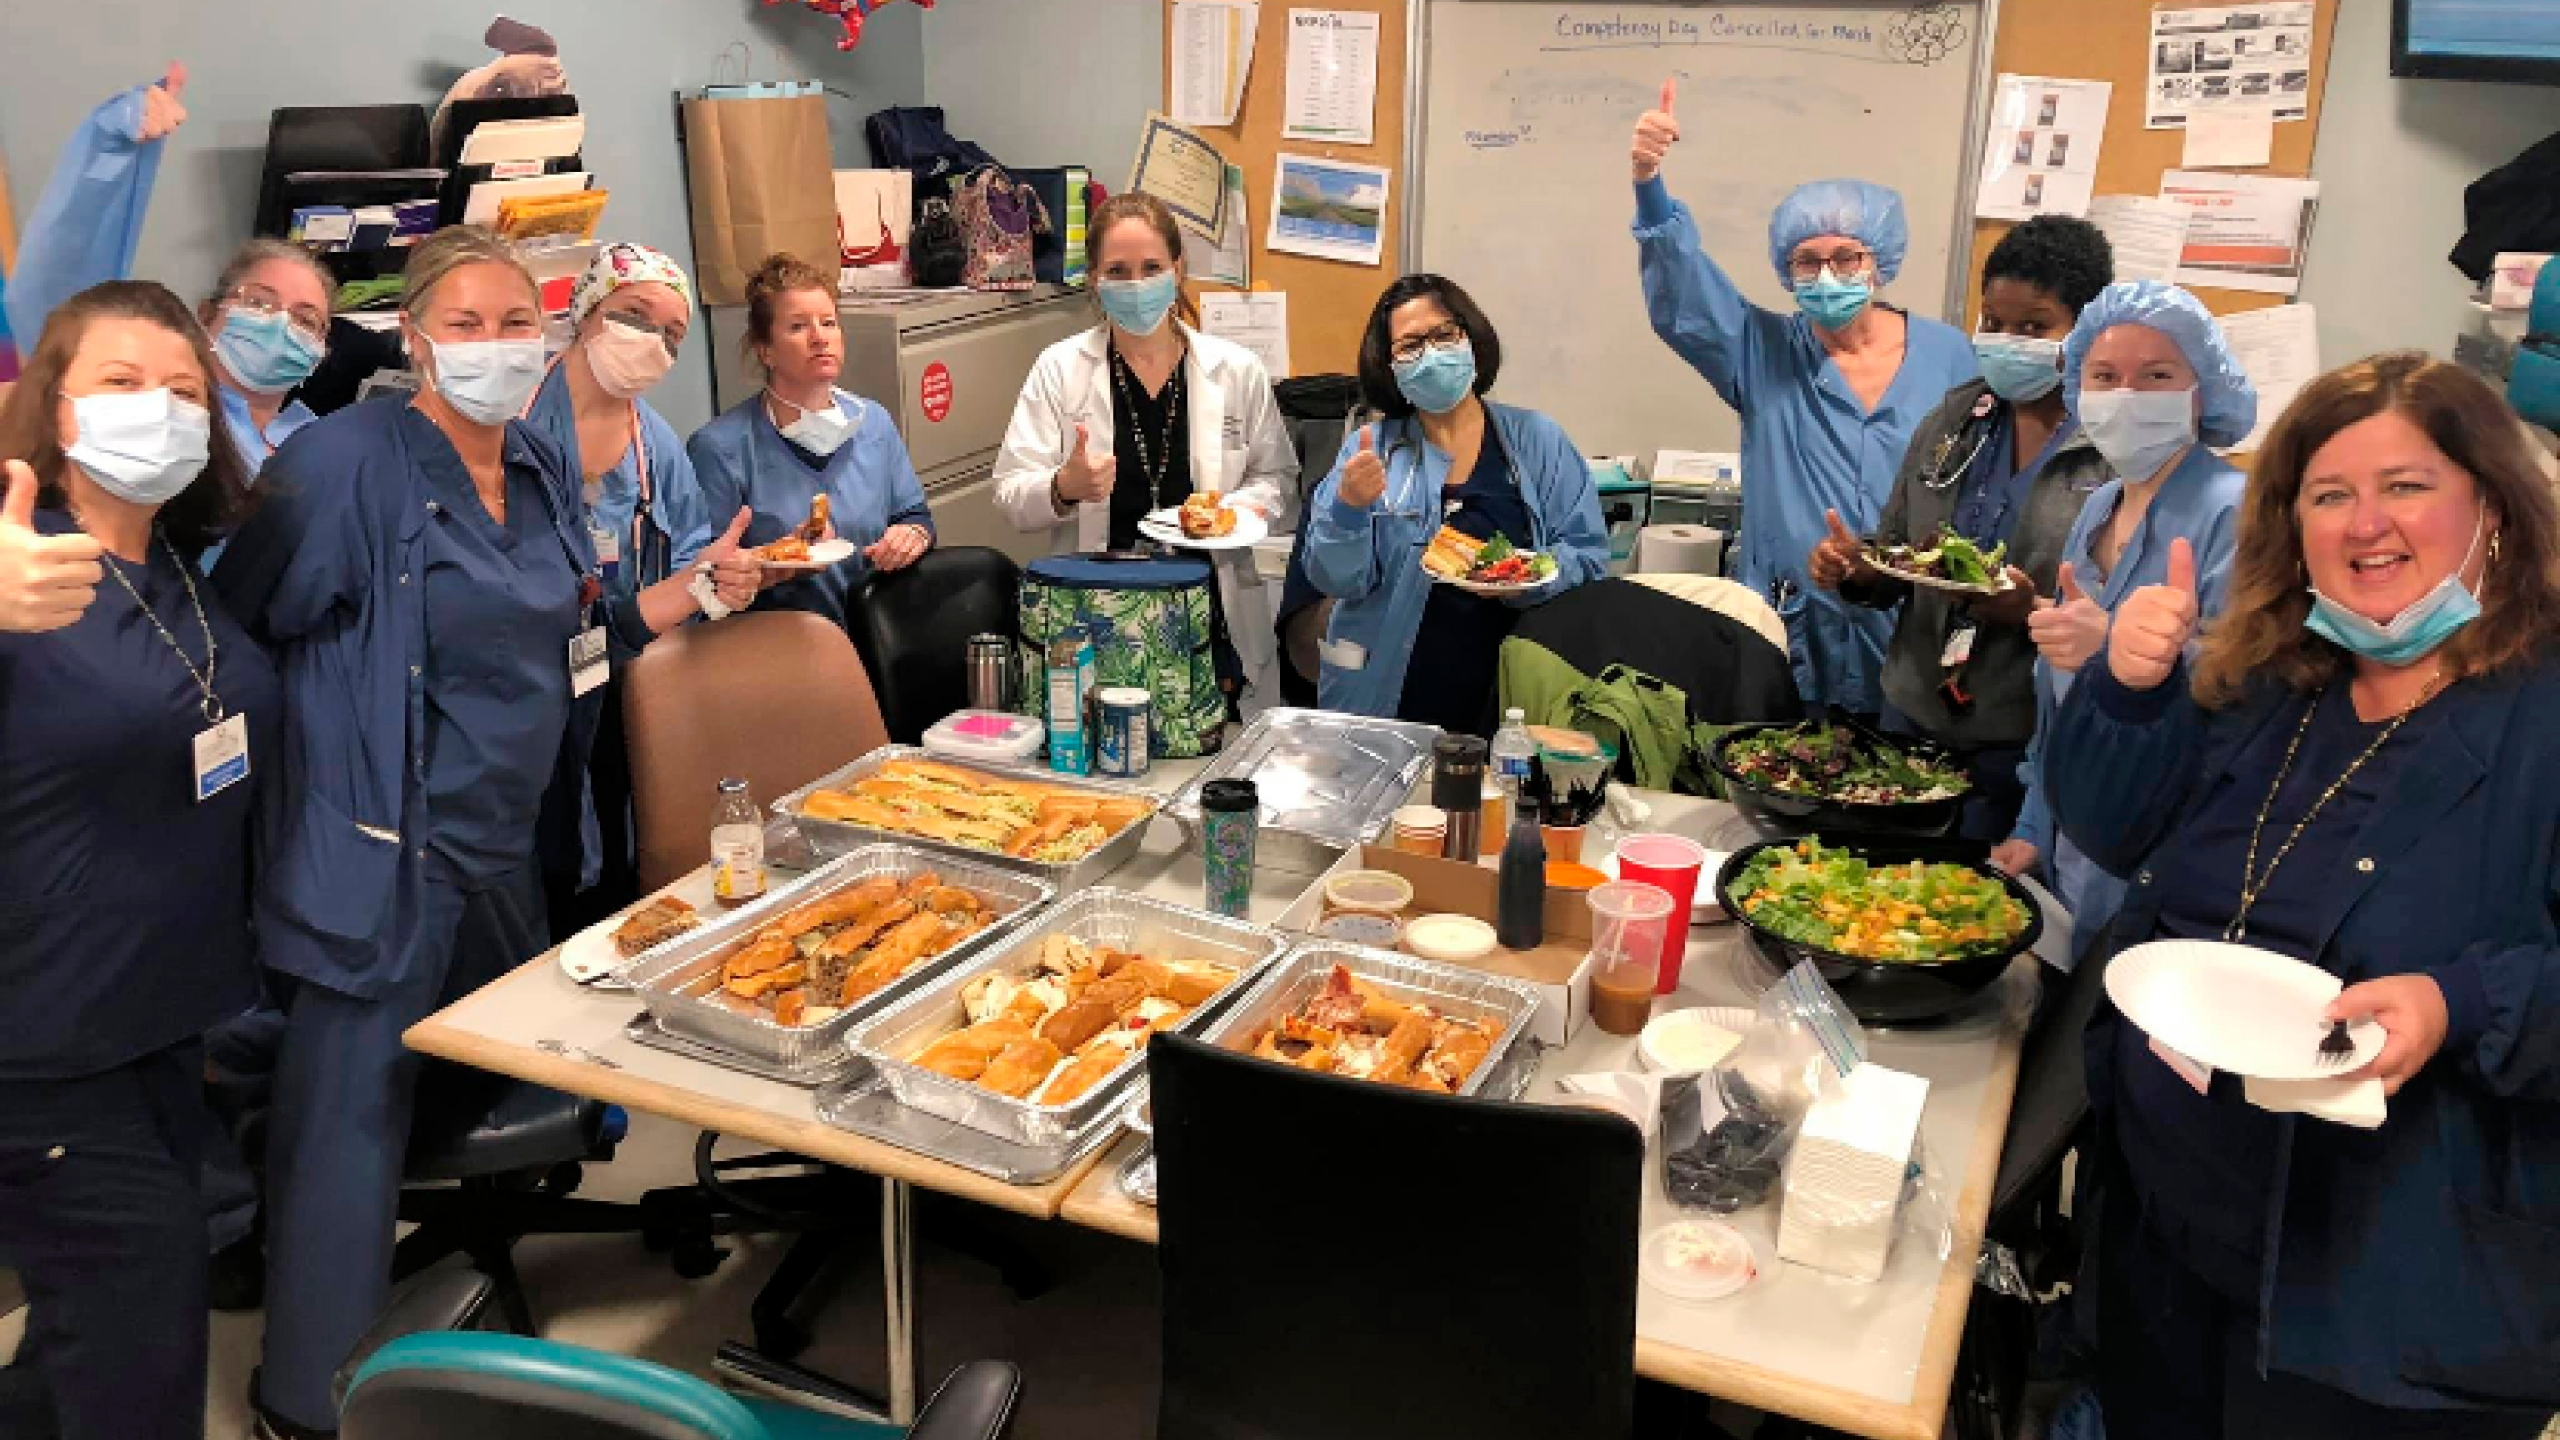 Staff members of the Hackensack Meridian Jersey Shore University Medical Center give a thumbs-up in Neptune City, N.J., as they eat a donated meal from Federico's Pizza. With restaurants closed for all but takeout orders during the coronavirus outbreak, the owners of the pizzeria could have shut down and laid off their 20 employees. Instead, the business's owners took out a $50,000 line of credit and guaranteed their workers they'll stay on the payroll for at least two months. (Courtesy of Maureen Morin via AP)